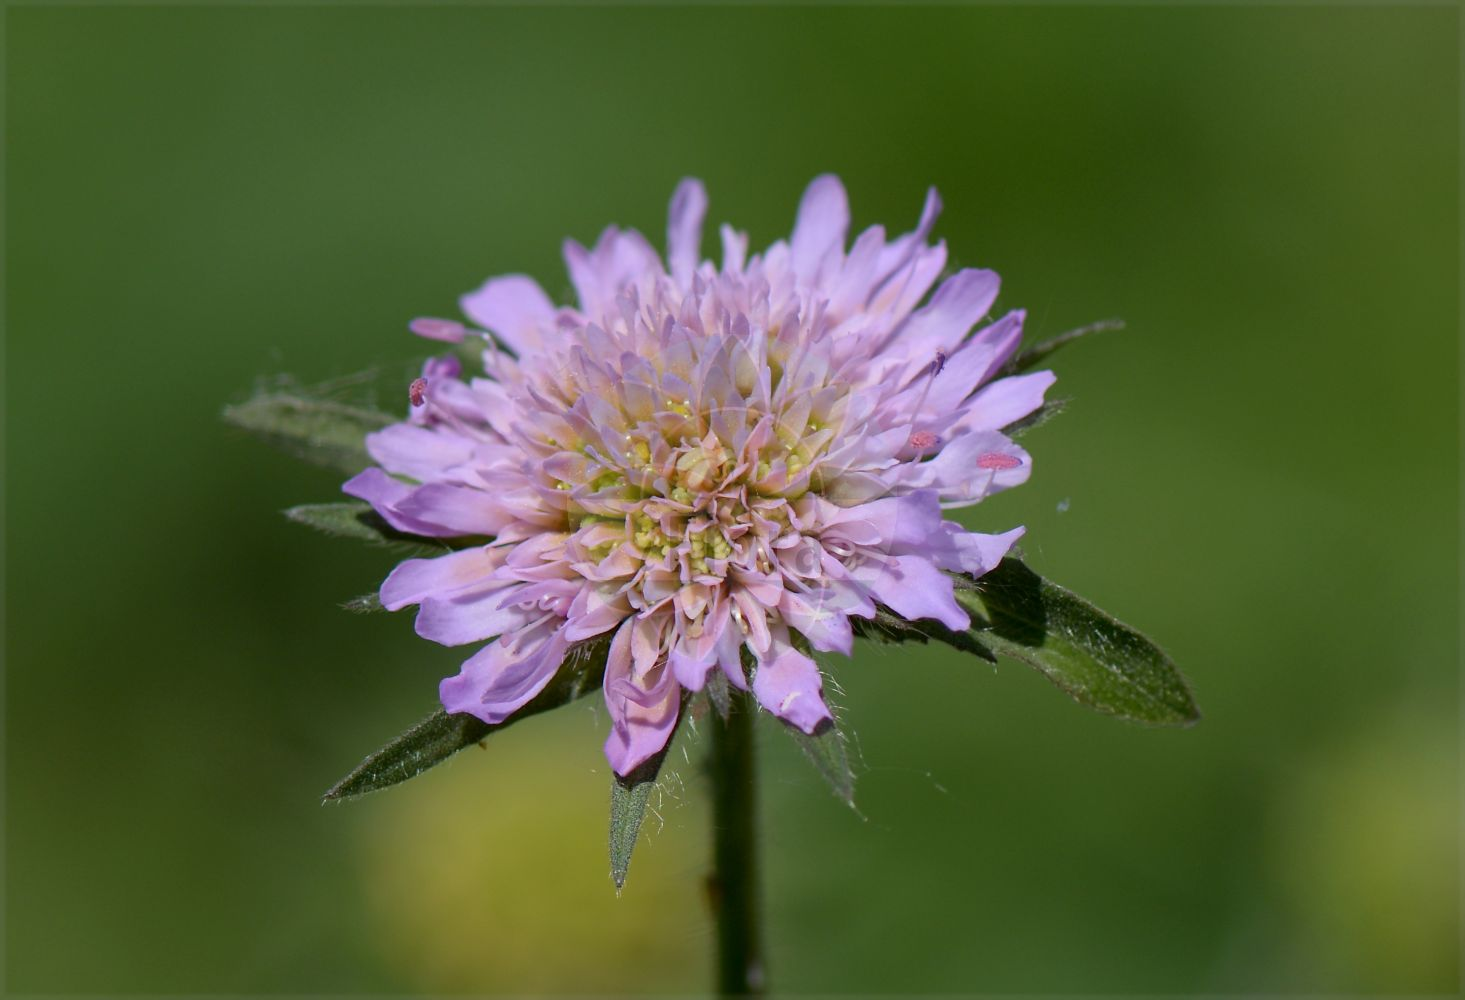 Foto von Knautia arvensis (Wiesen-Witwenblume - Field Scabious). Das Bild zeigt Bluete. Das Foto wurde in Heidelberg, Baden-Wuerttemberg, Deutschland aufgenommen. ---- Photo of Knautia arvensis (Wiesen-Witwenblume - Field Scabious).The image is showing flower.The picture was taken in Heidelberg, Baden-Wuerttemberg, Germany.(Knautia arvensis,Wiesen-Witwenblume,Field Scabious,Knautia avernica,Knautia boderei,Knautia borderei,Knautia catalaunica,Knautia timeroyi,Scabiosa arvensis,Scabiosa collina,Scabiosa dubia,Scabiosa polymorpha,Trichera arvensis,Trichera timeroyi,Kitaibels Witwenblume,Field Scabiosa,Knautia,Witwenblume,Scabious,Caprifoliaceae,Geissblattgewaechse,Honeysuckle family,Bluete,flower)